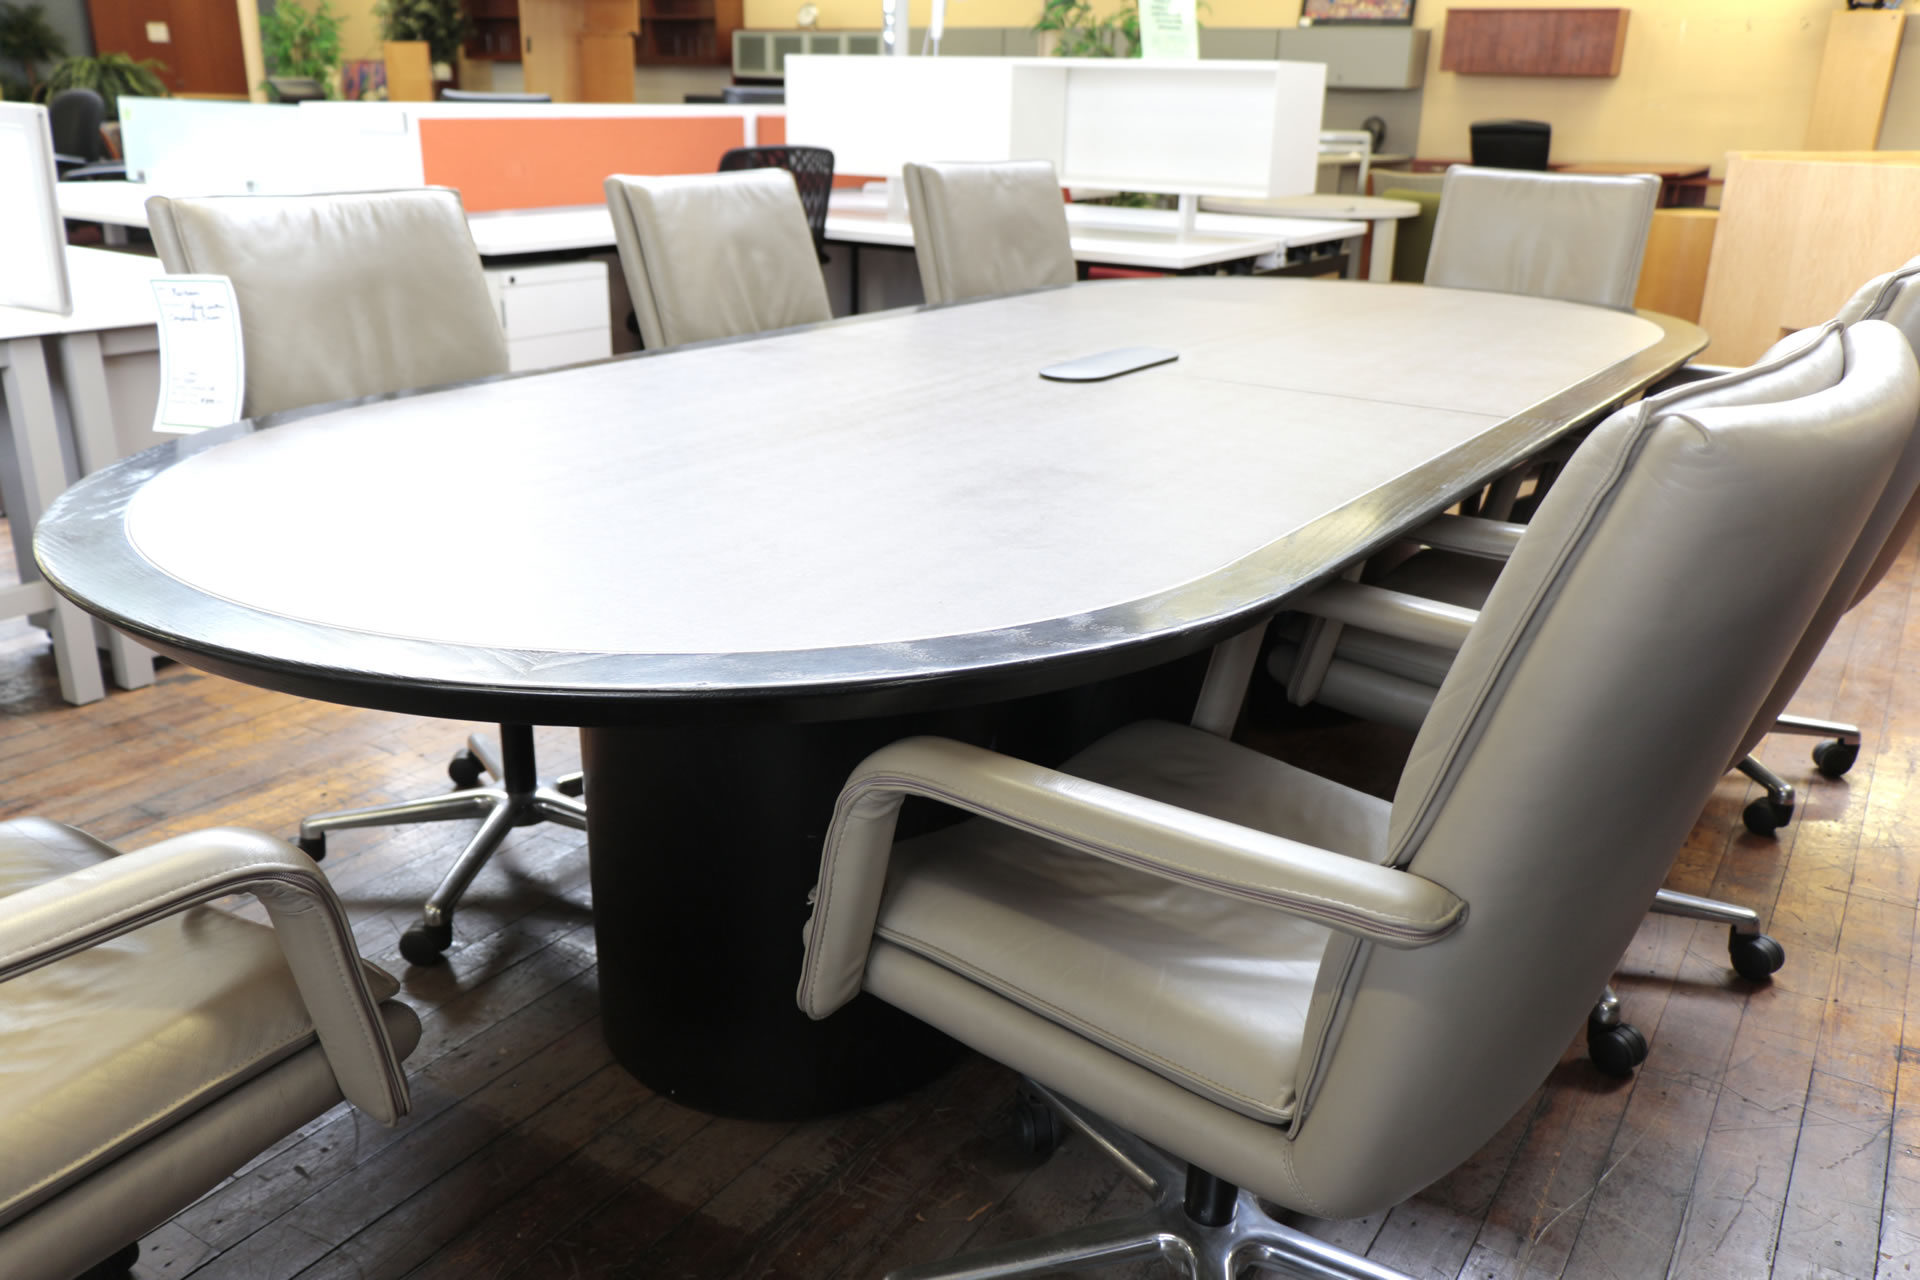 Wall Goldfinger Racetrack Leather Top Conference Tables in 4 Sizes